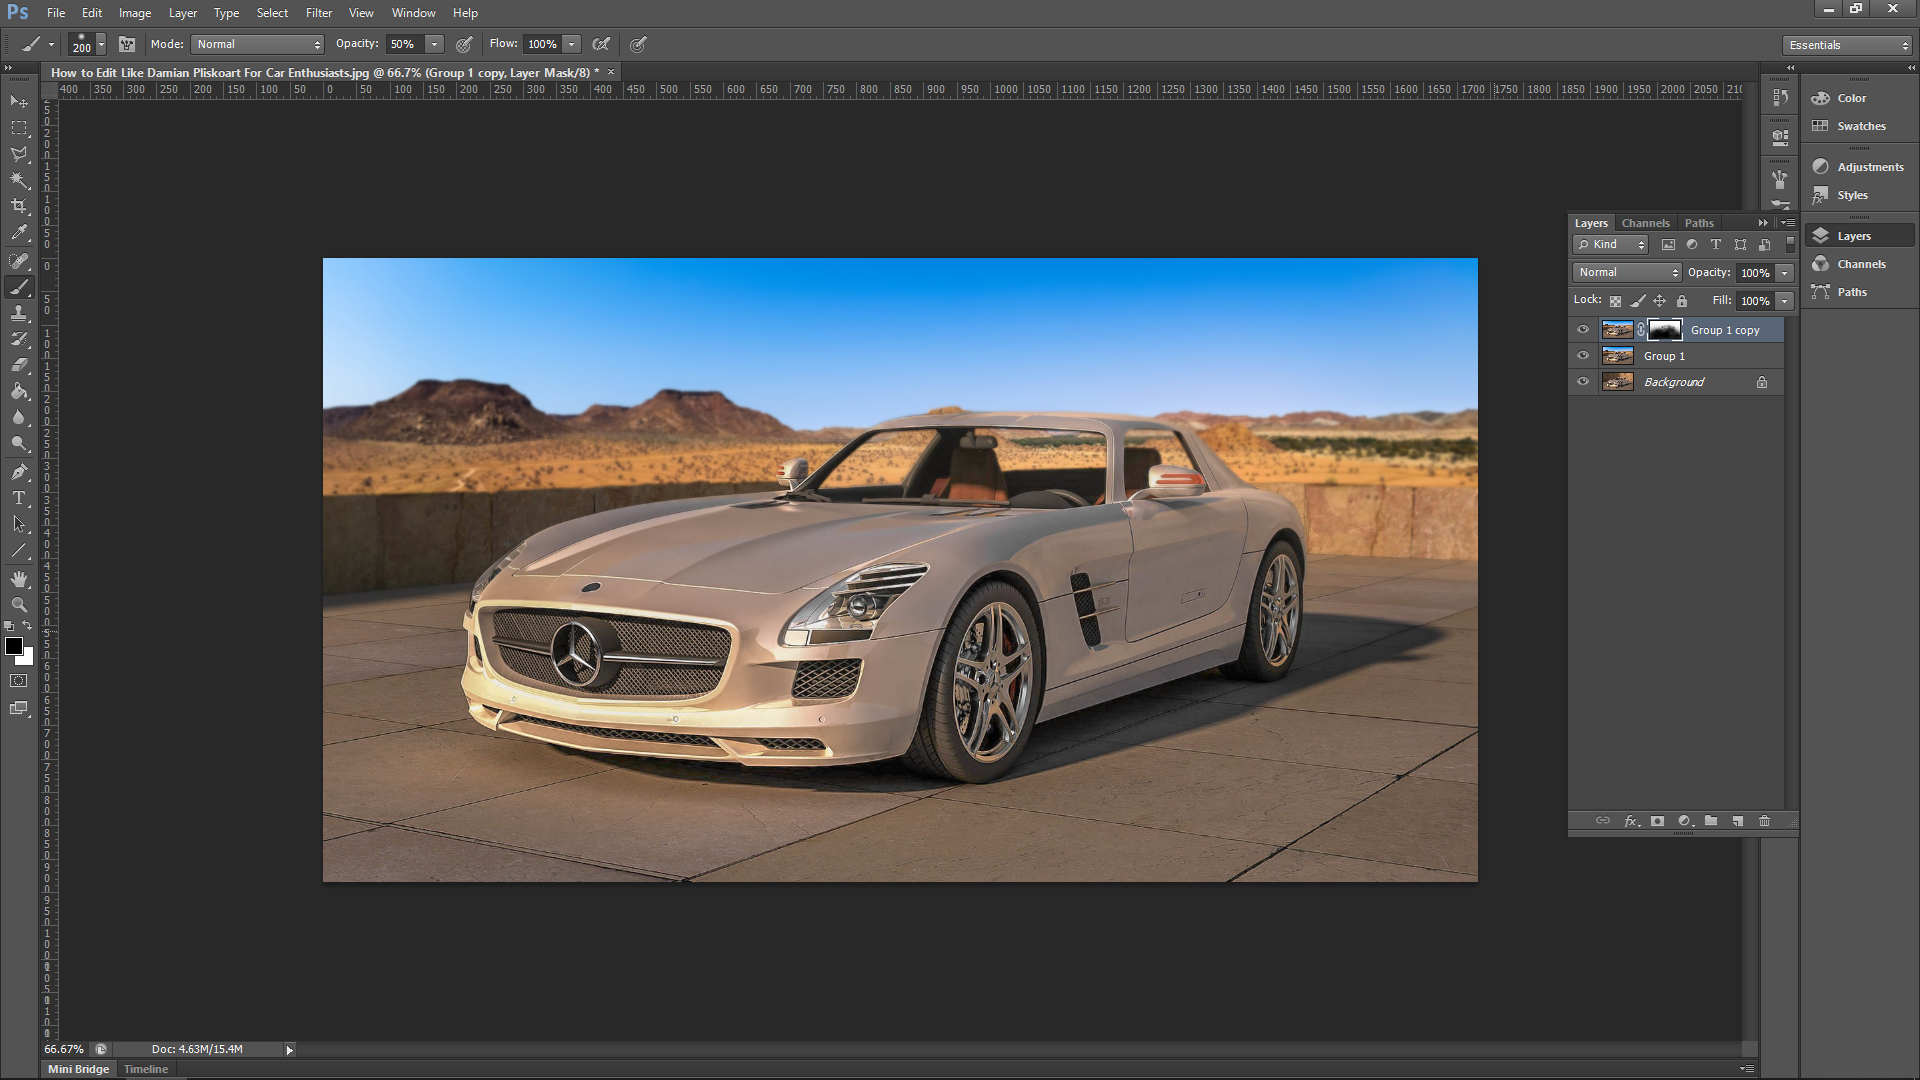 Editing a car background in photoshop